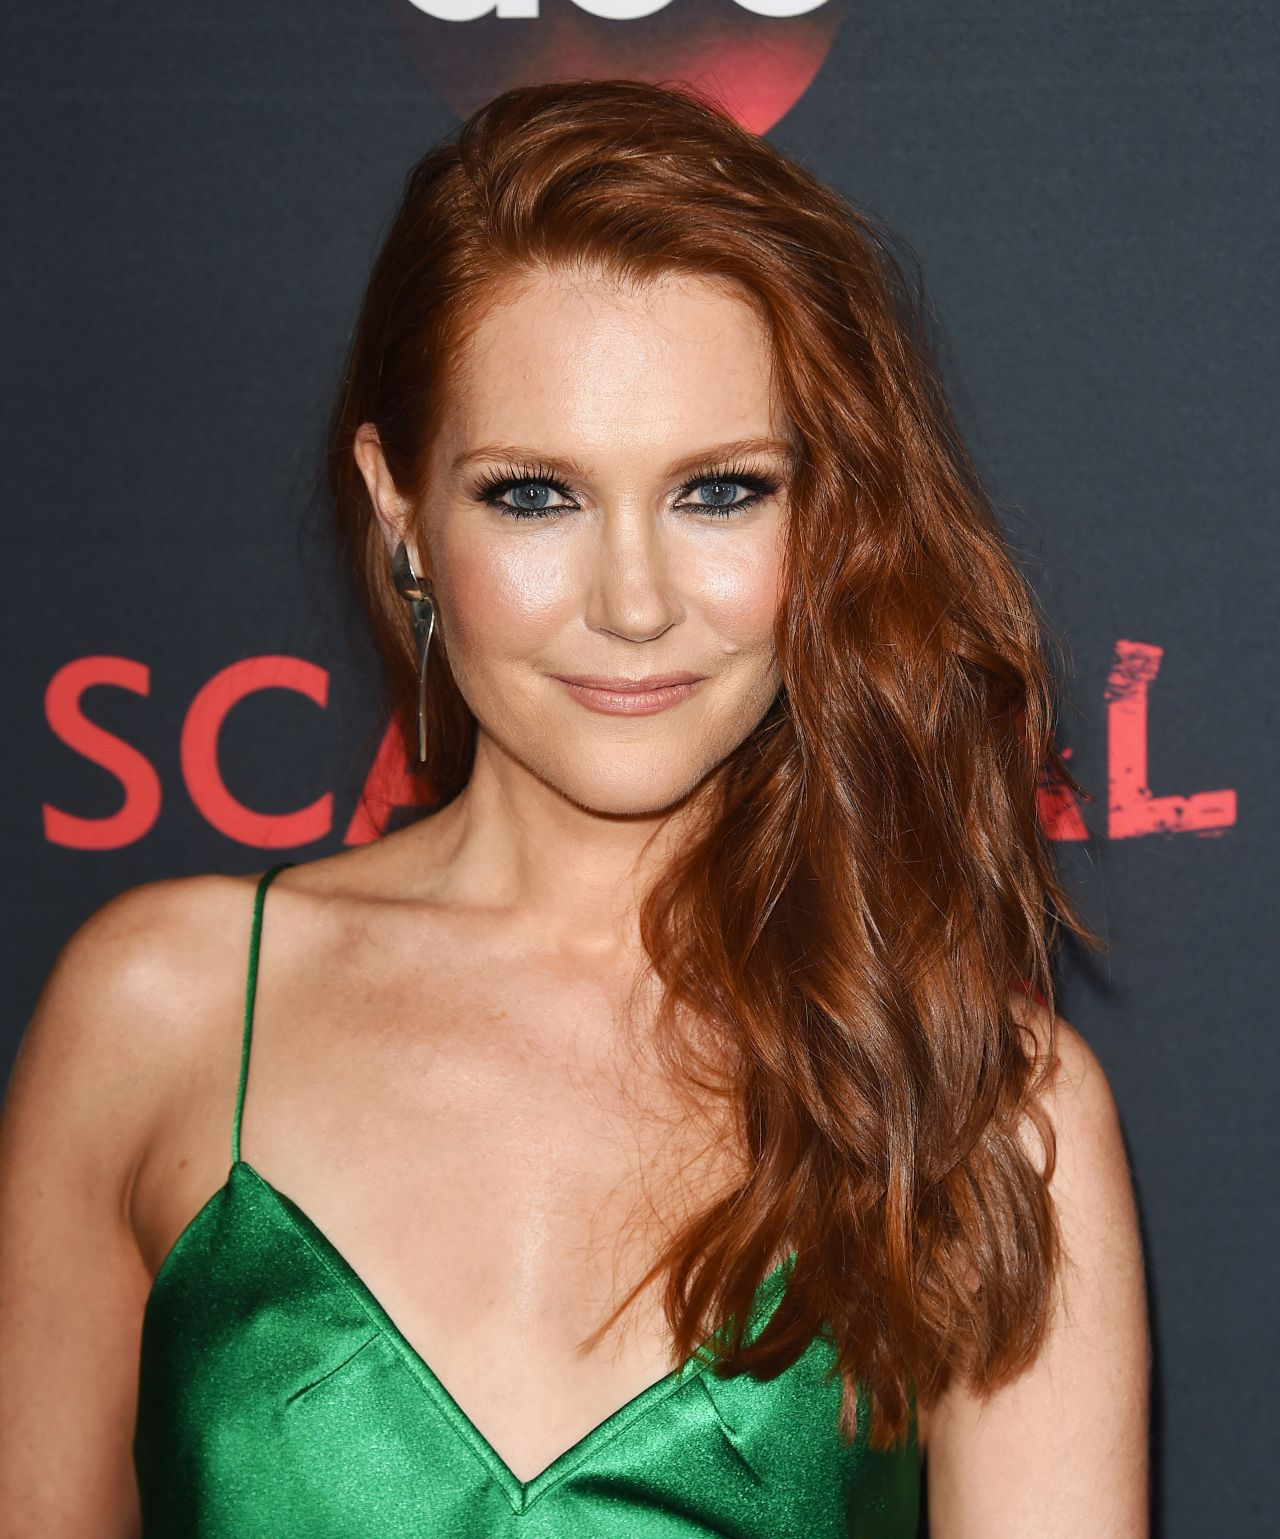 Darby Stanchfield Scandal 100th Episode Celebration In